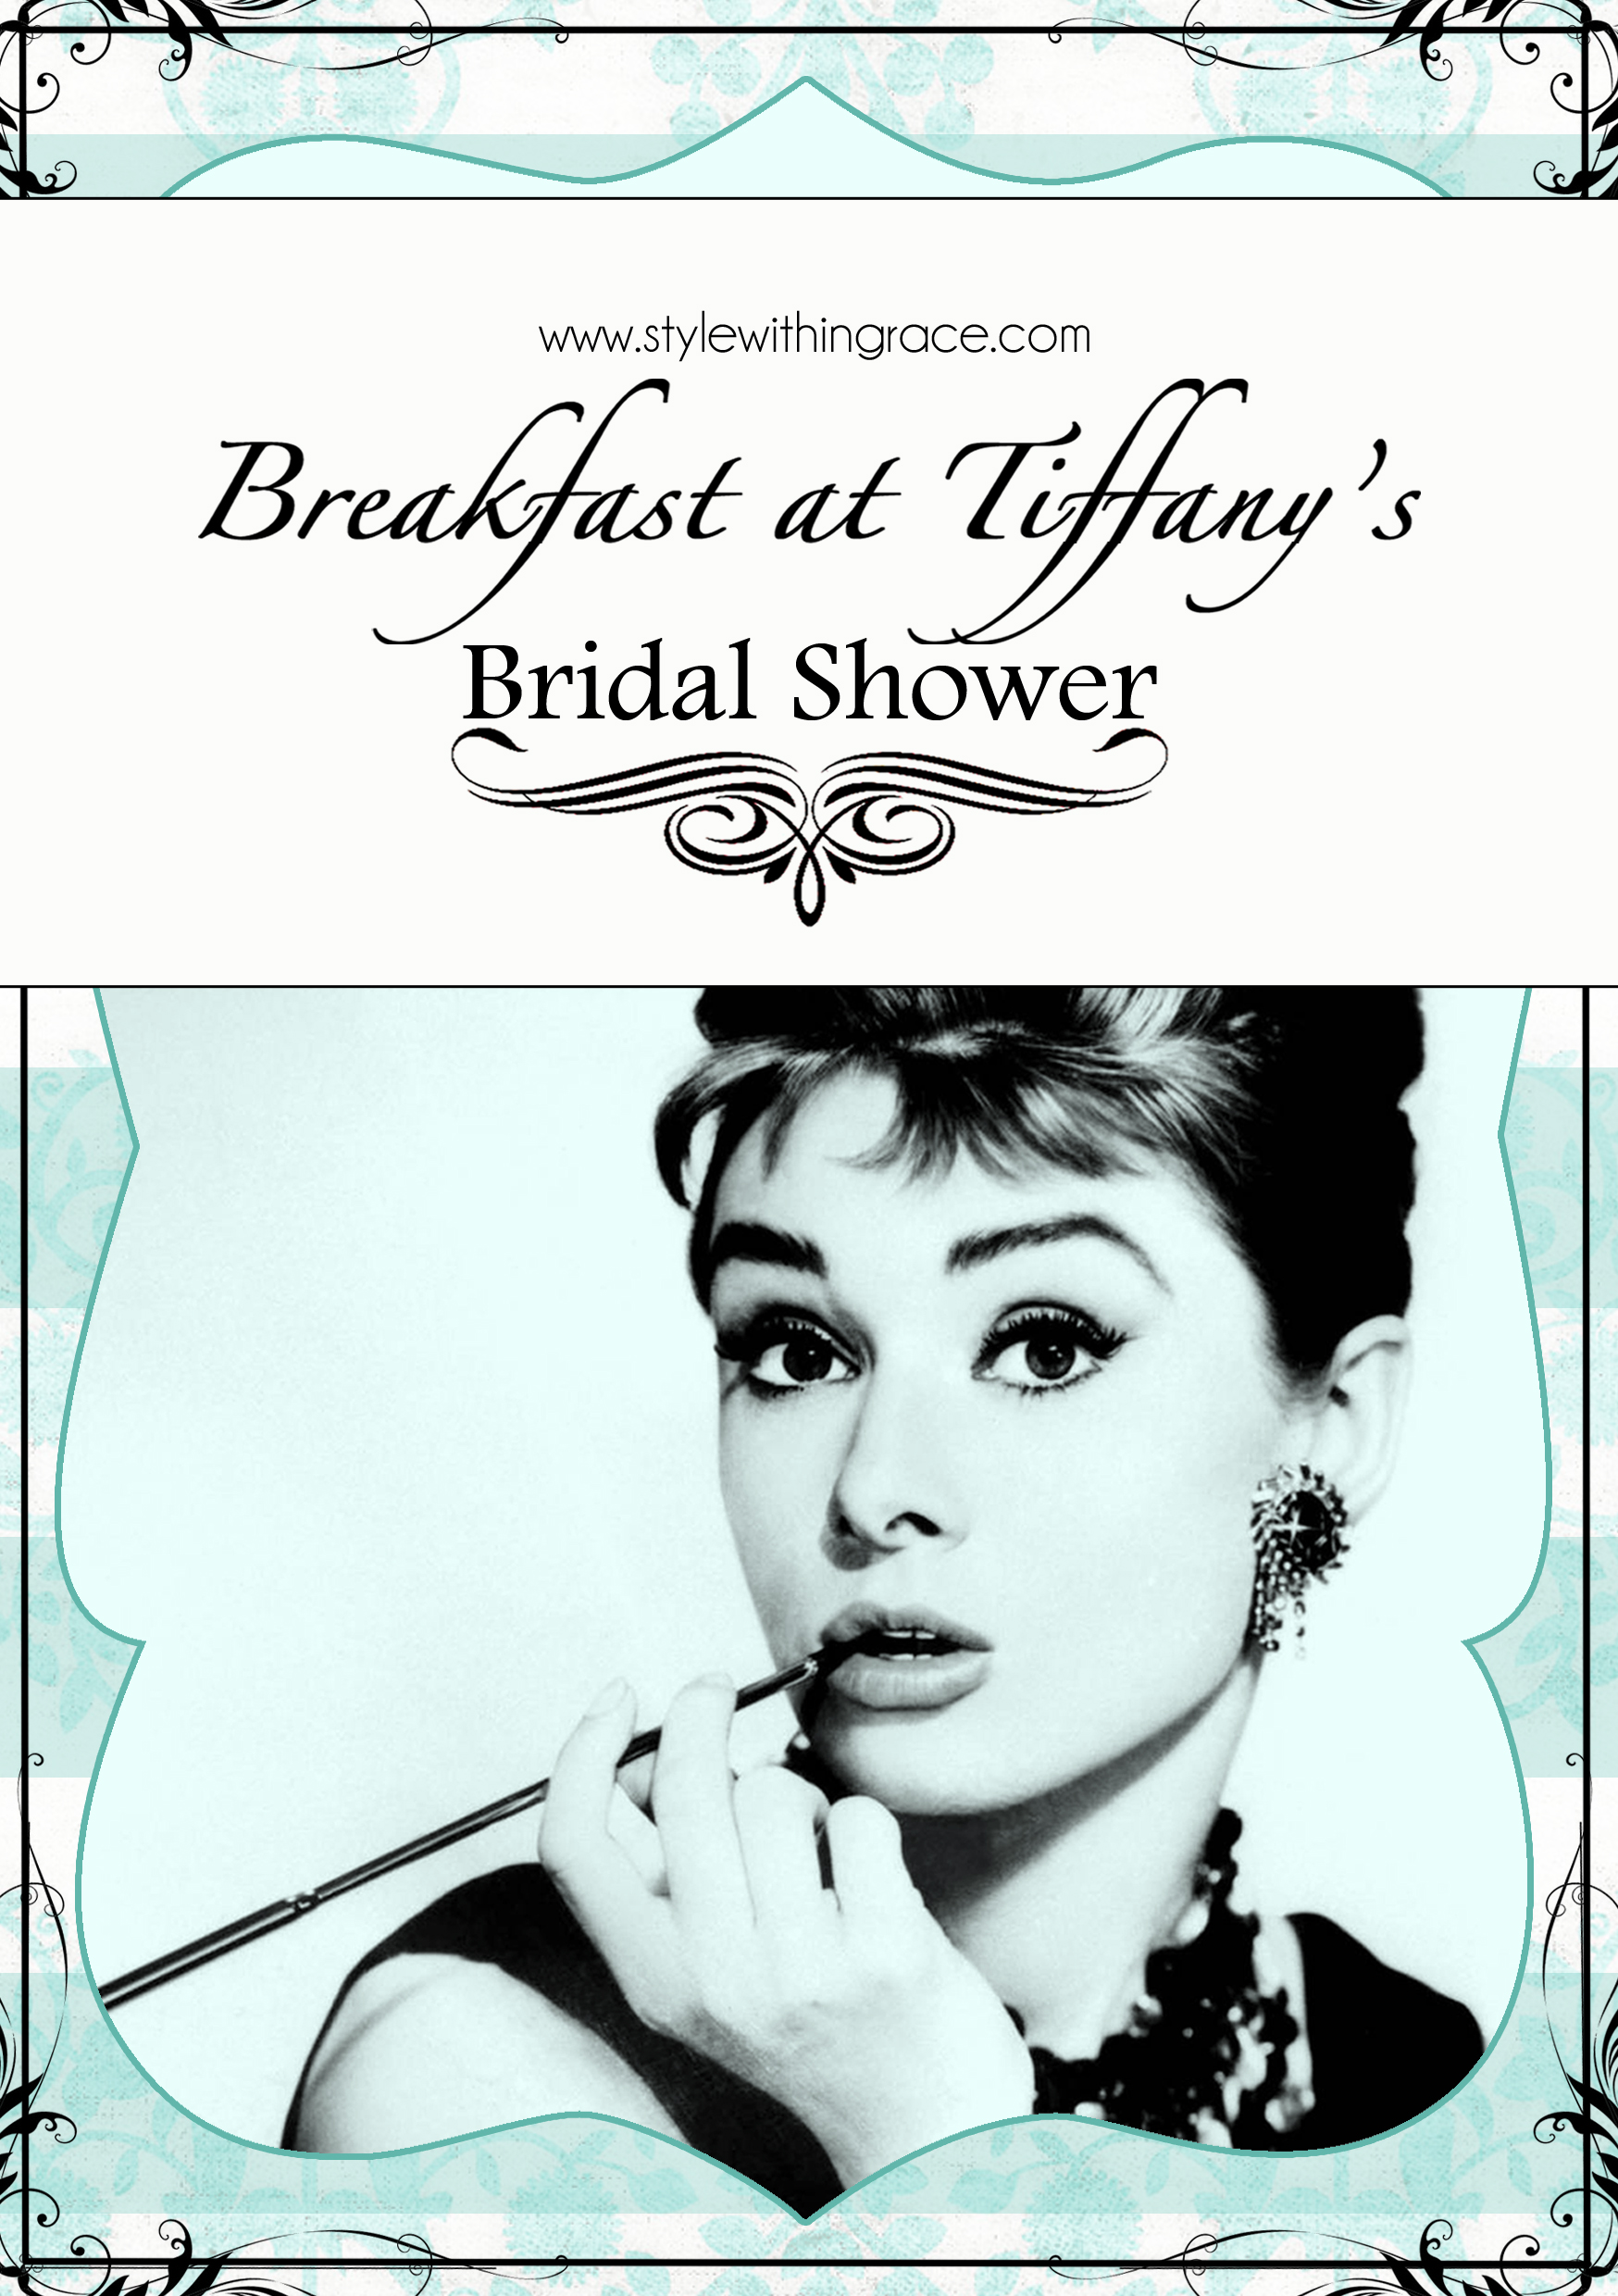 A classy yet affordable DIY bridal shower or hens night themed around the movie Breakfast at Tiffany's. Game ideas and printable, invite templates and a keepsake inspiration.